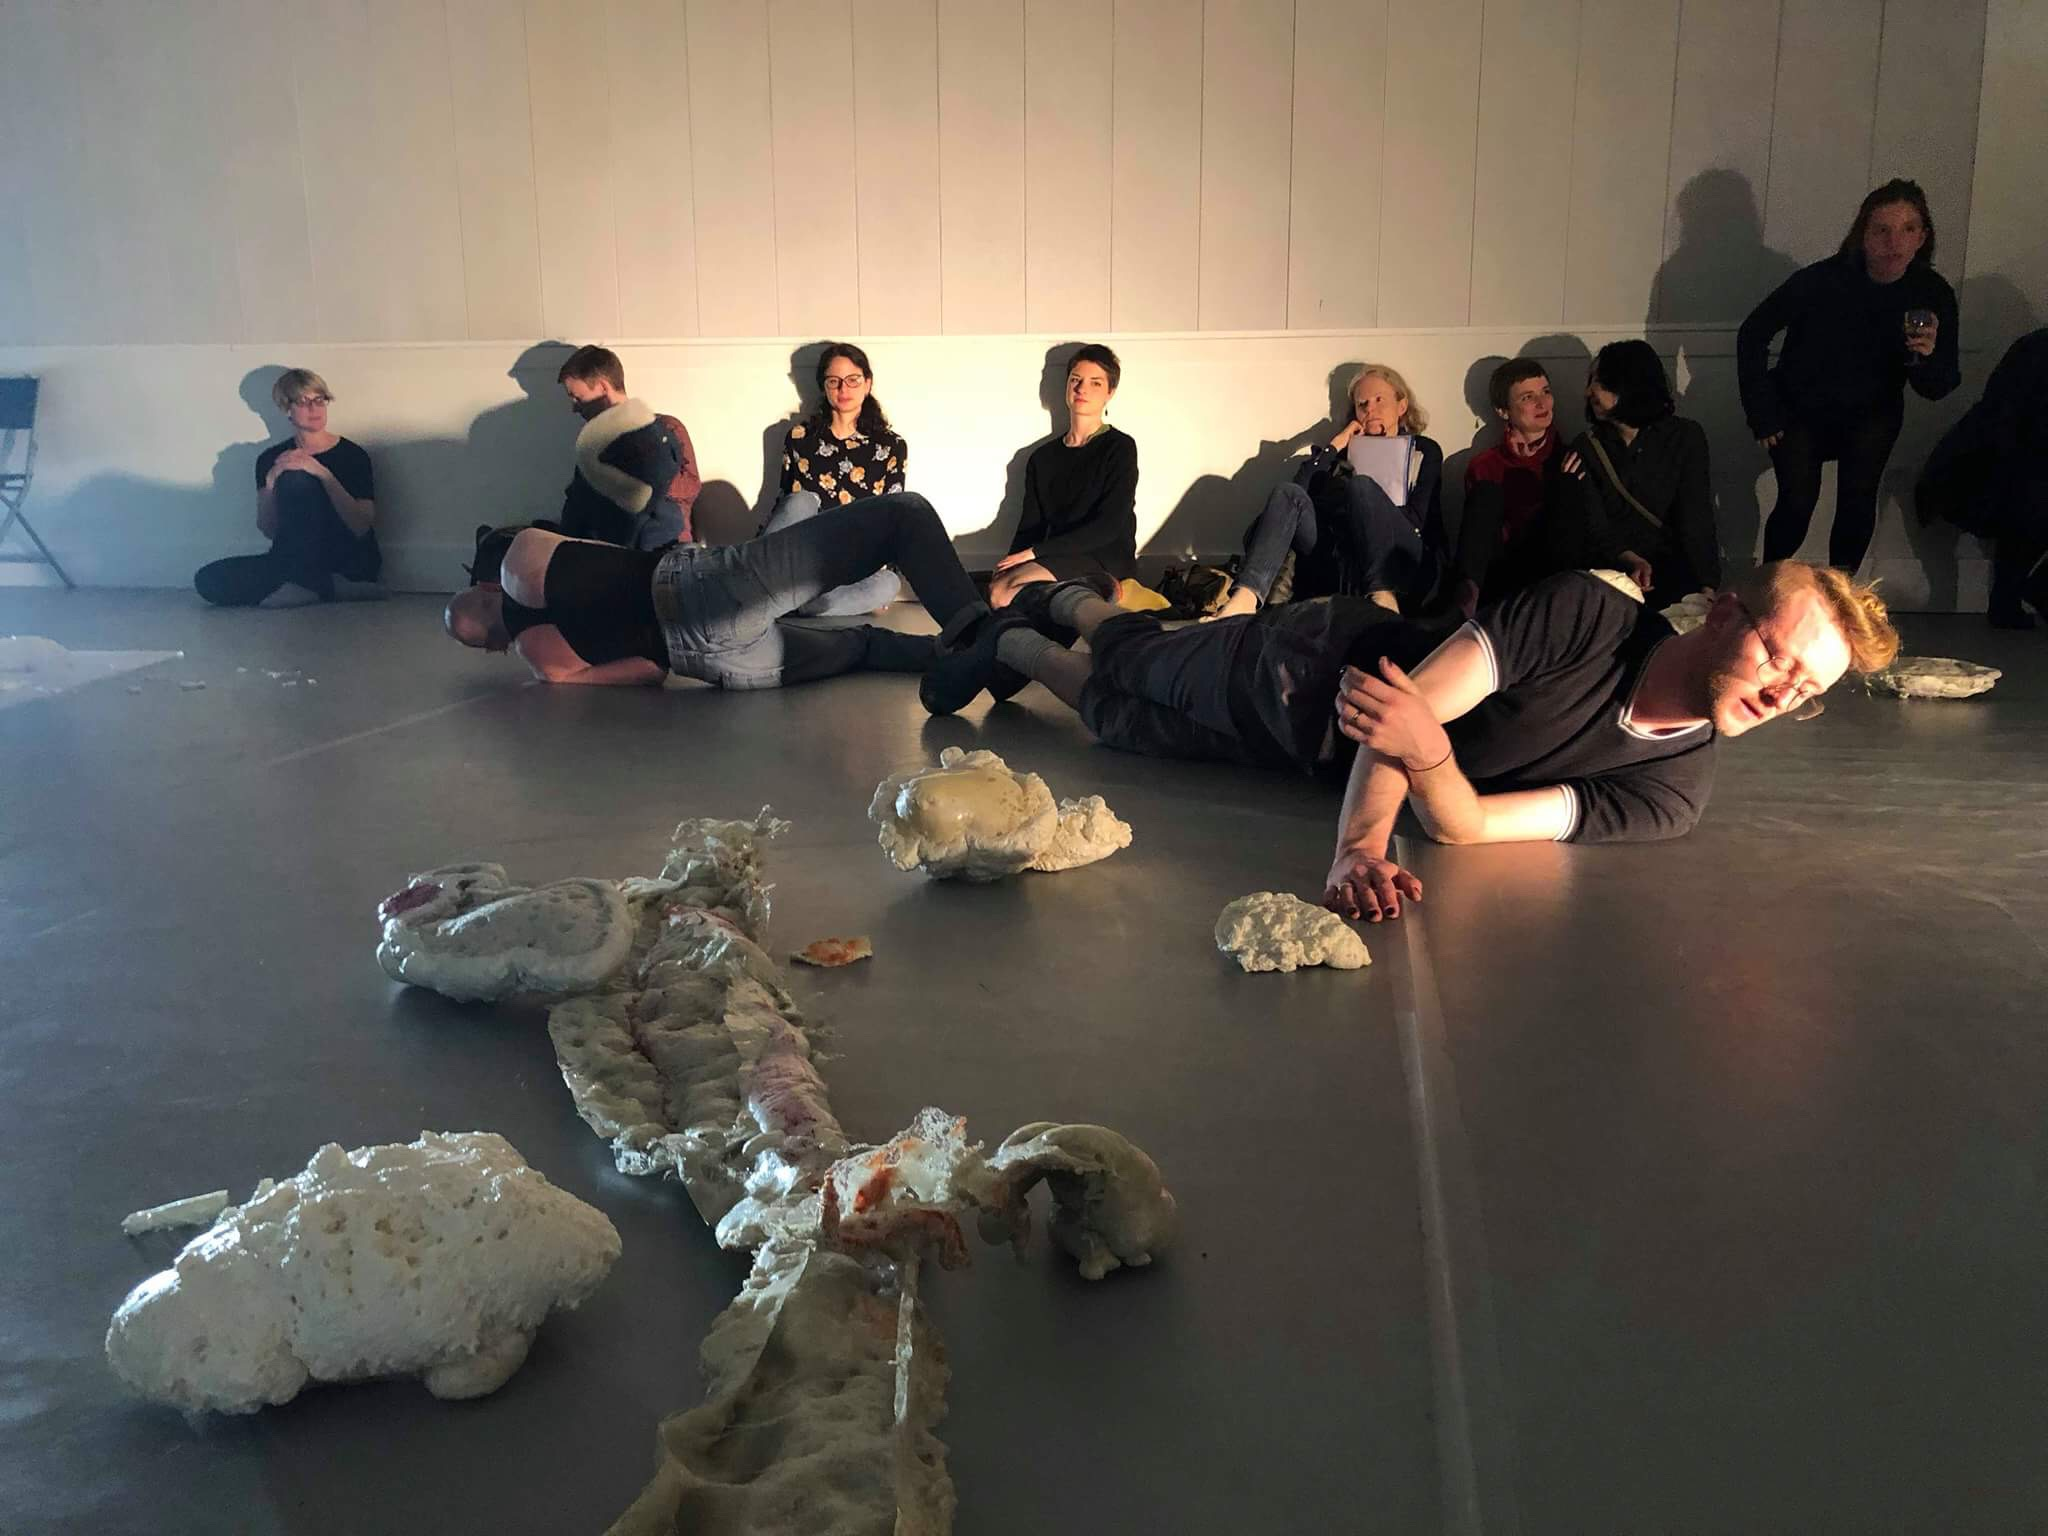 Open Choreography Performance Event, Siobhan Davies Dance, 2018.